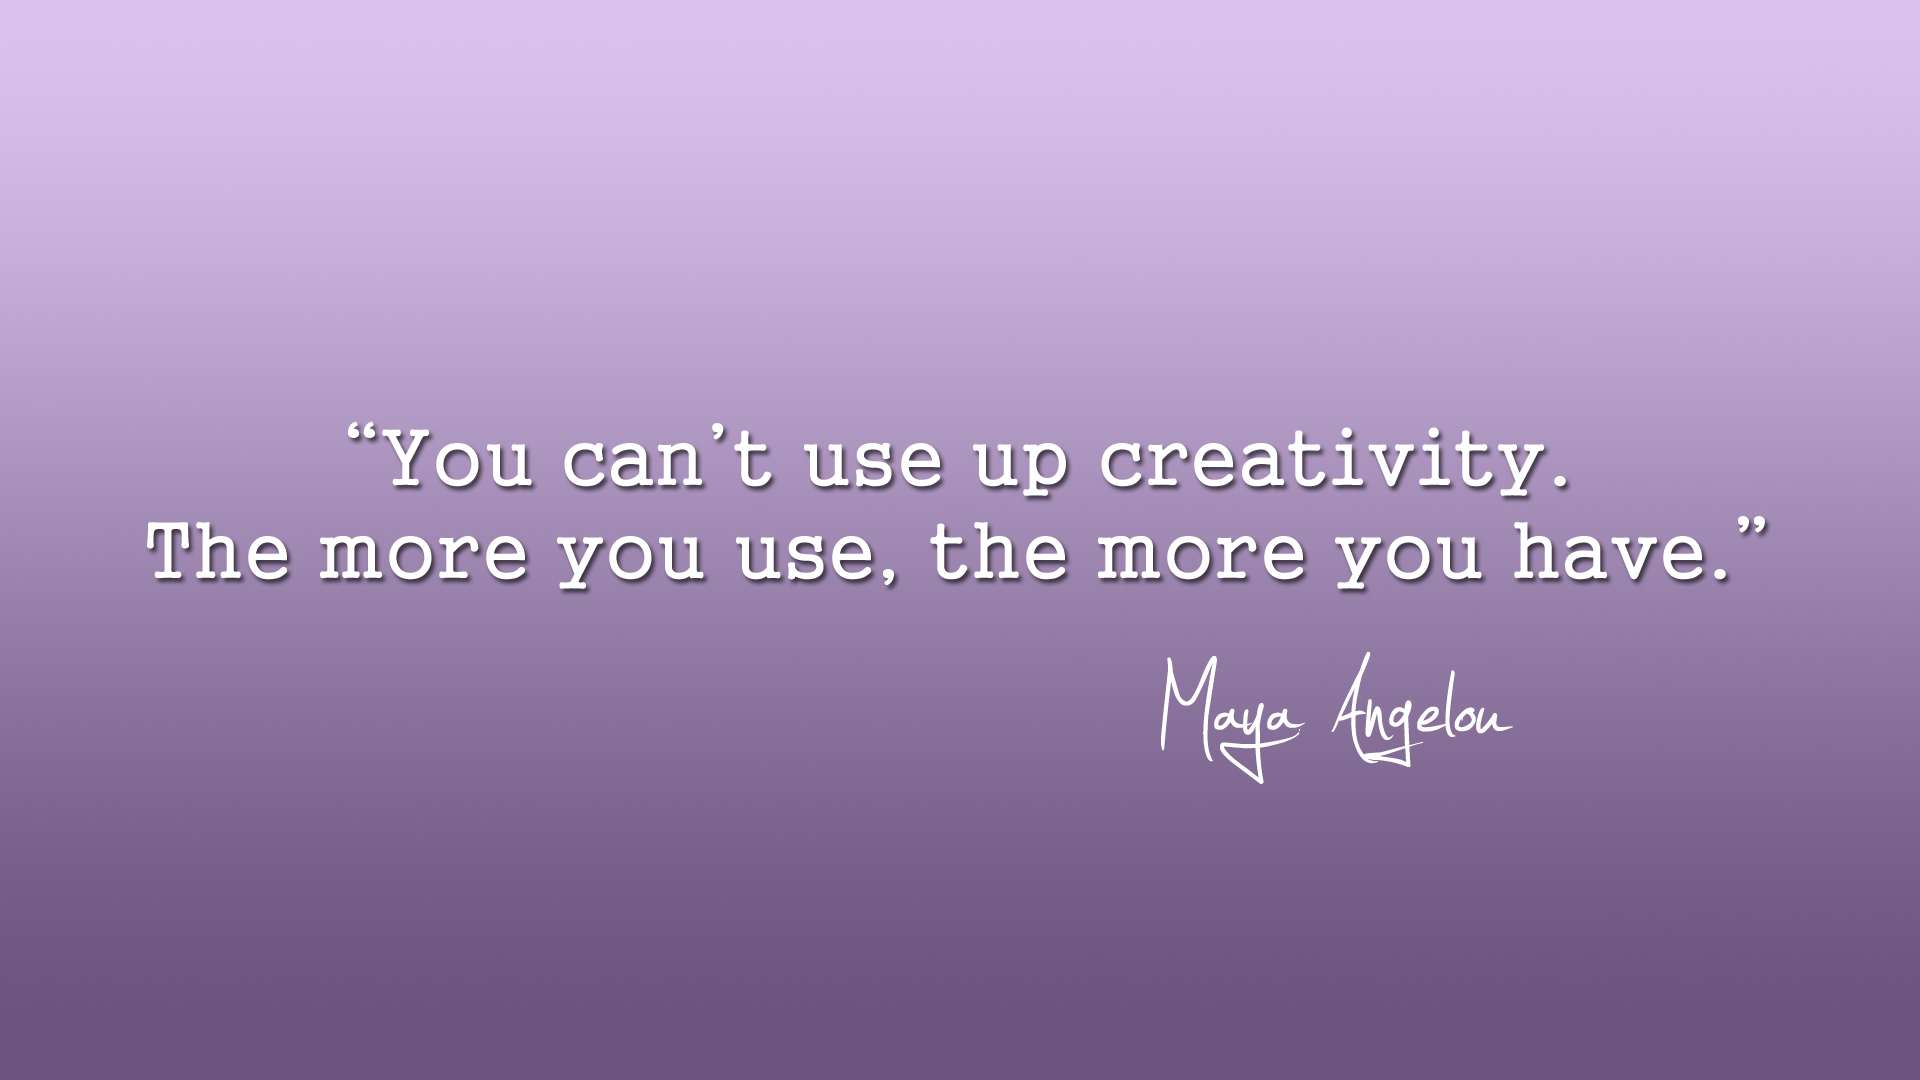 quote wallpaper maya angelou creativity by eablevins